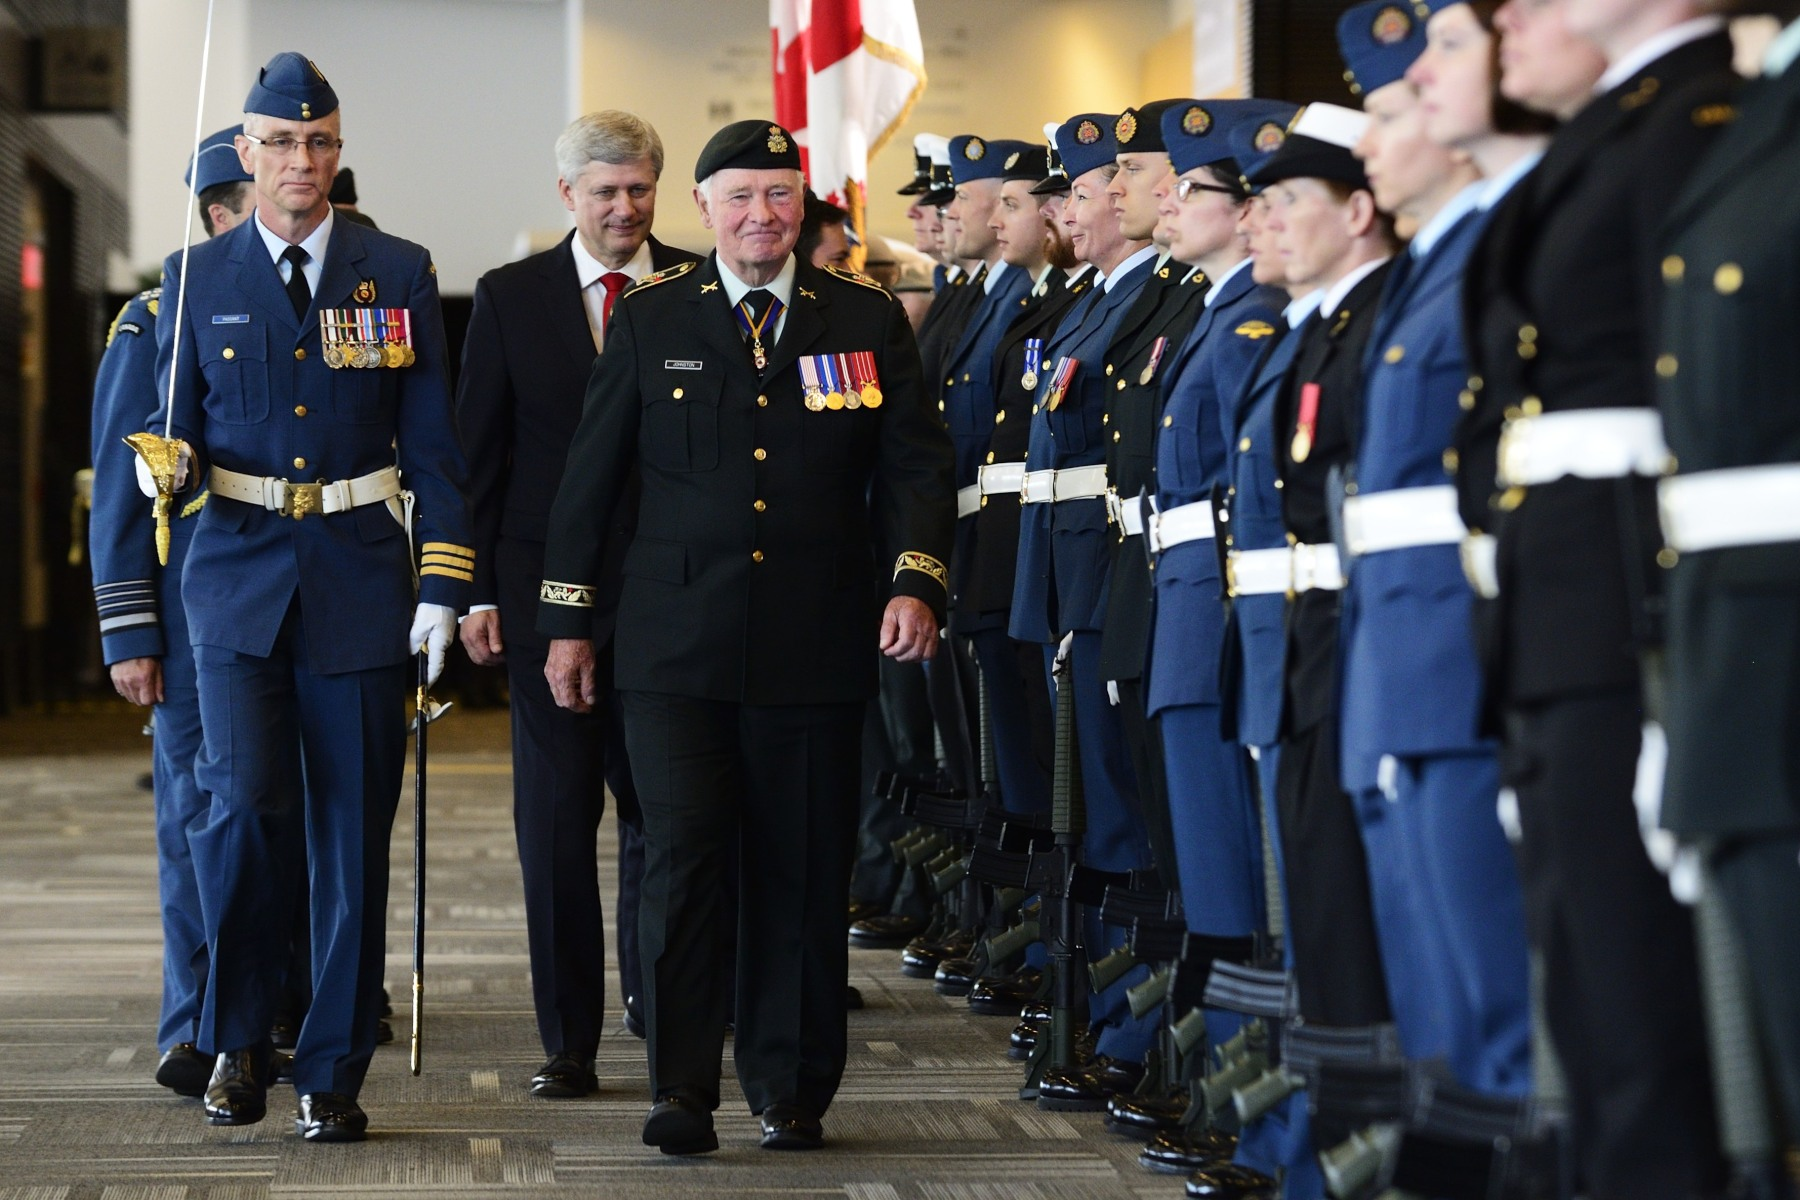 His Excellency conducted the inspection of a 100-member Canadian Armed Forces guard of honour.